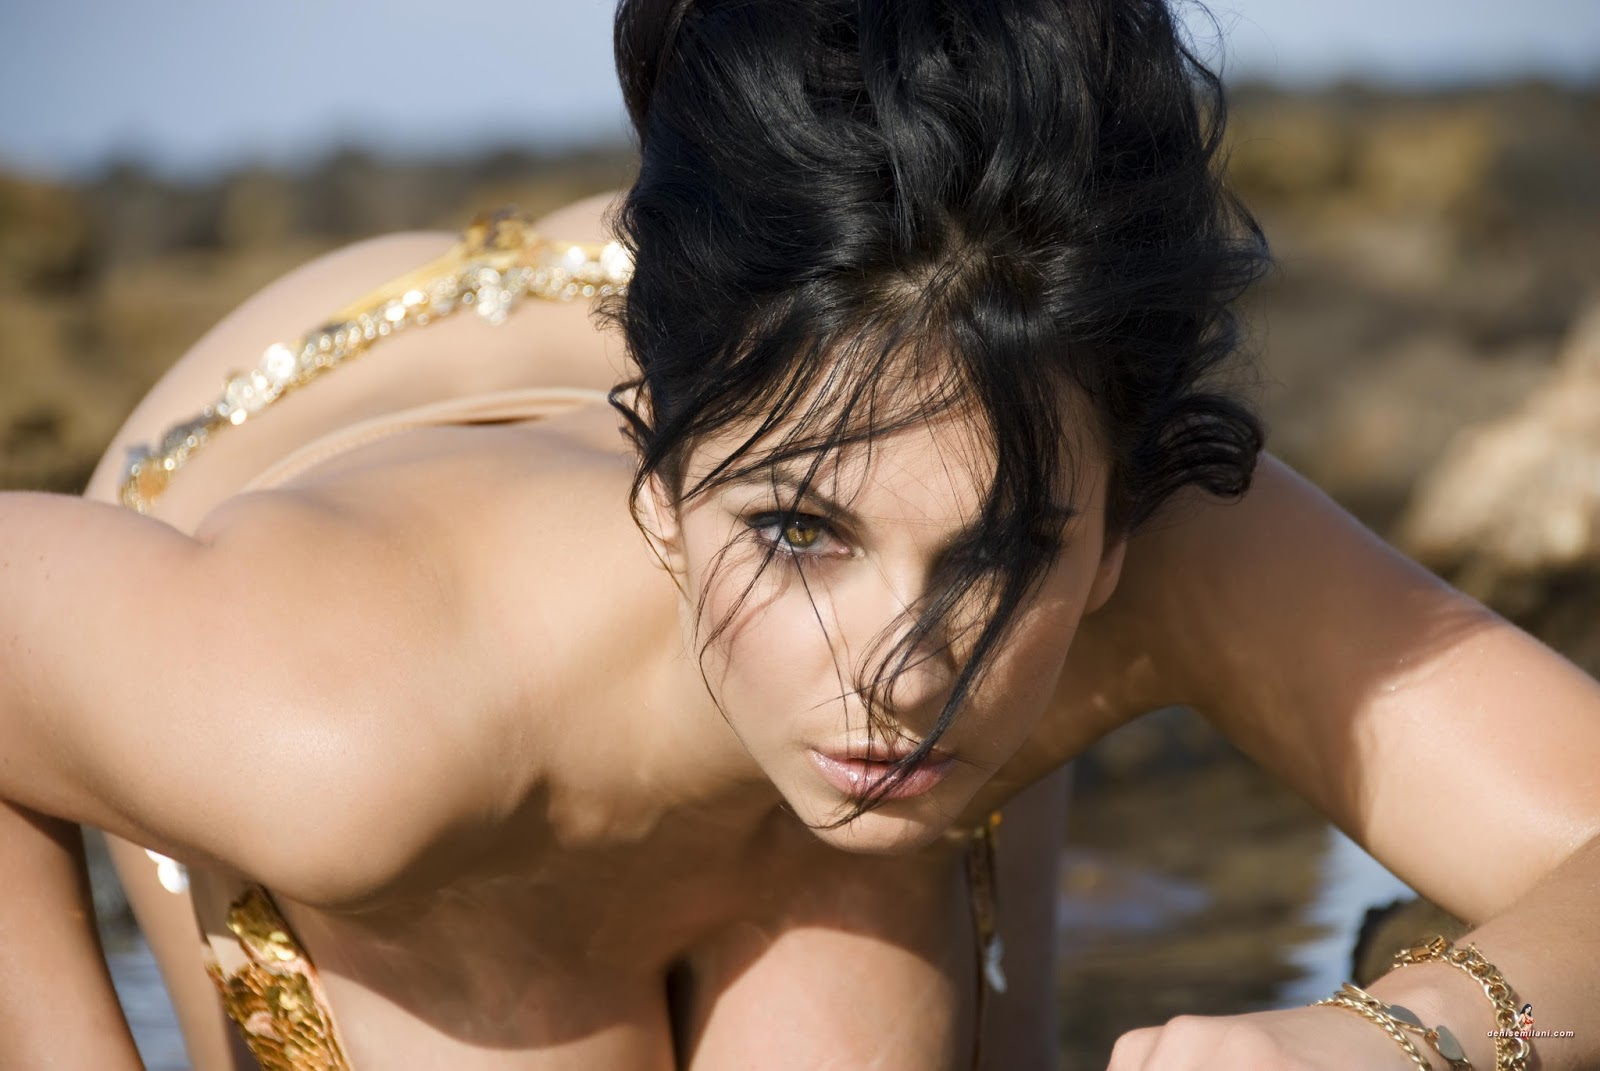 picture-leyla-milani-naked-pics